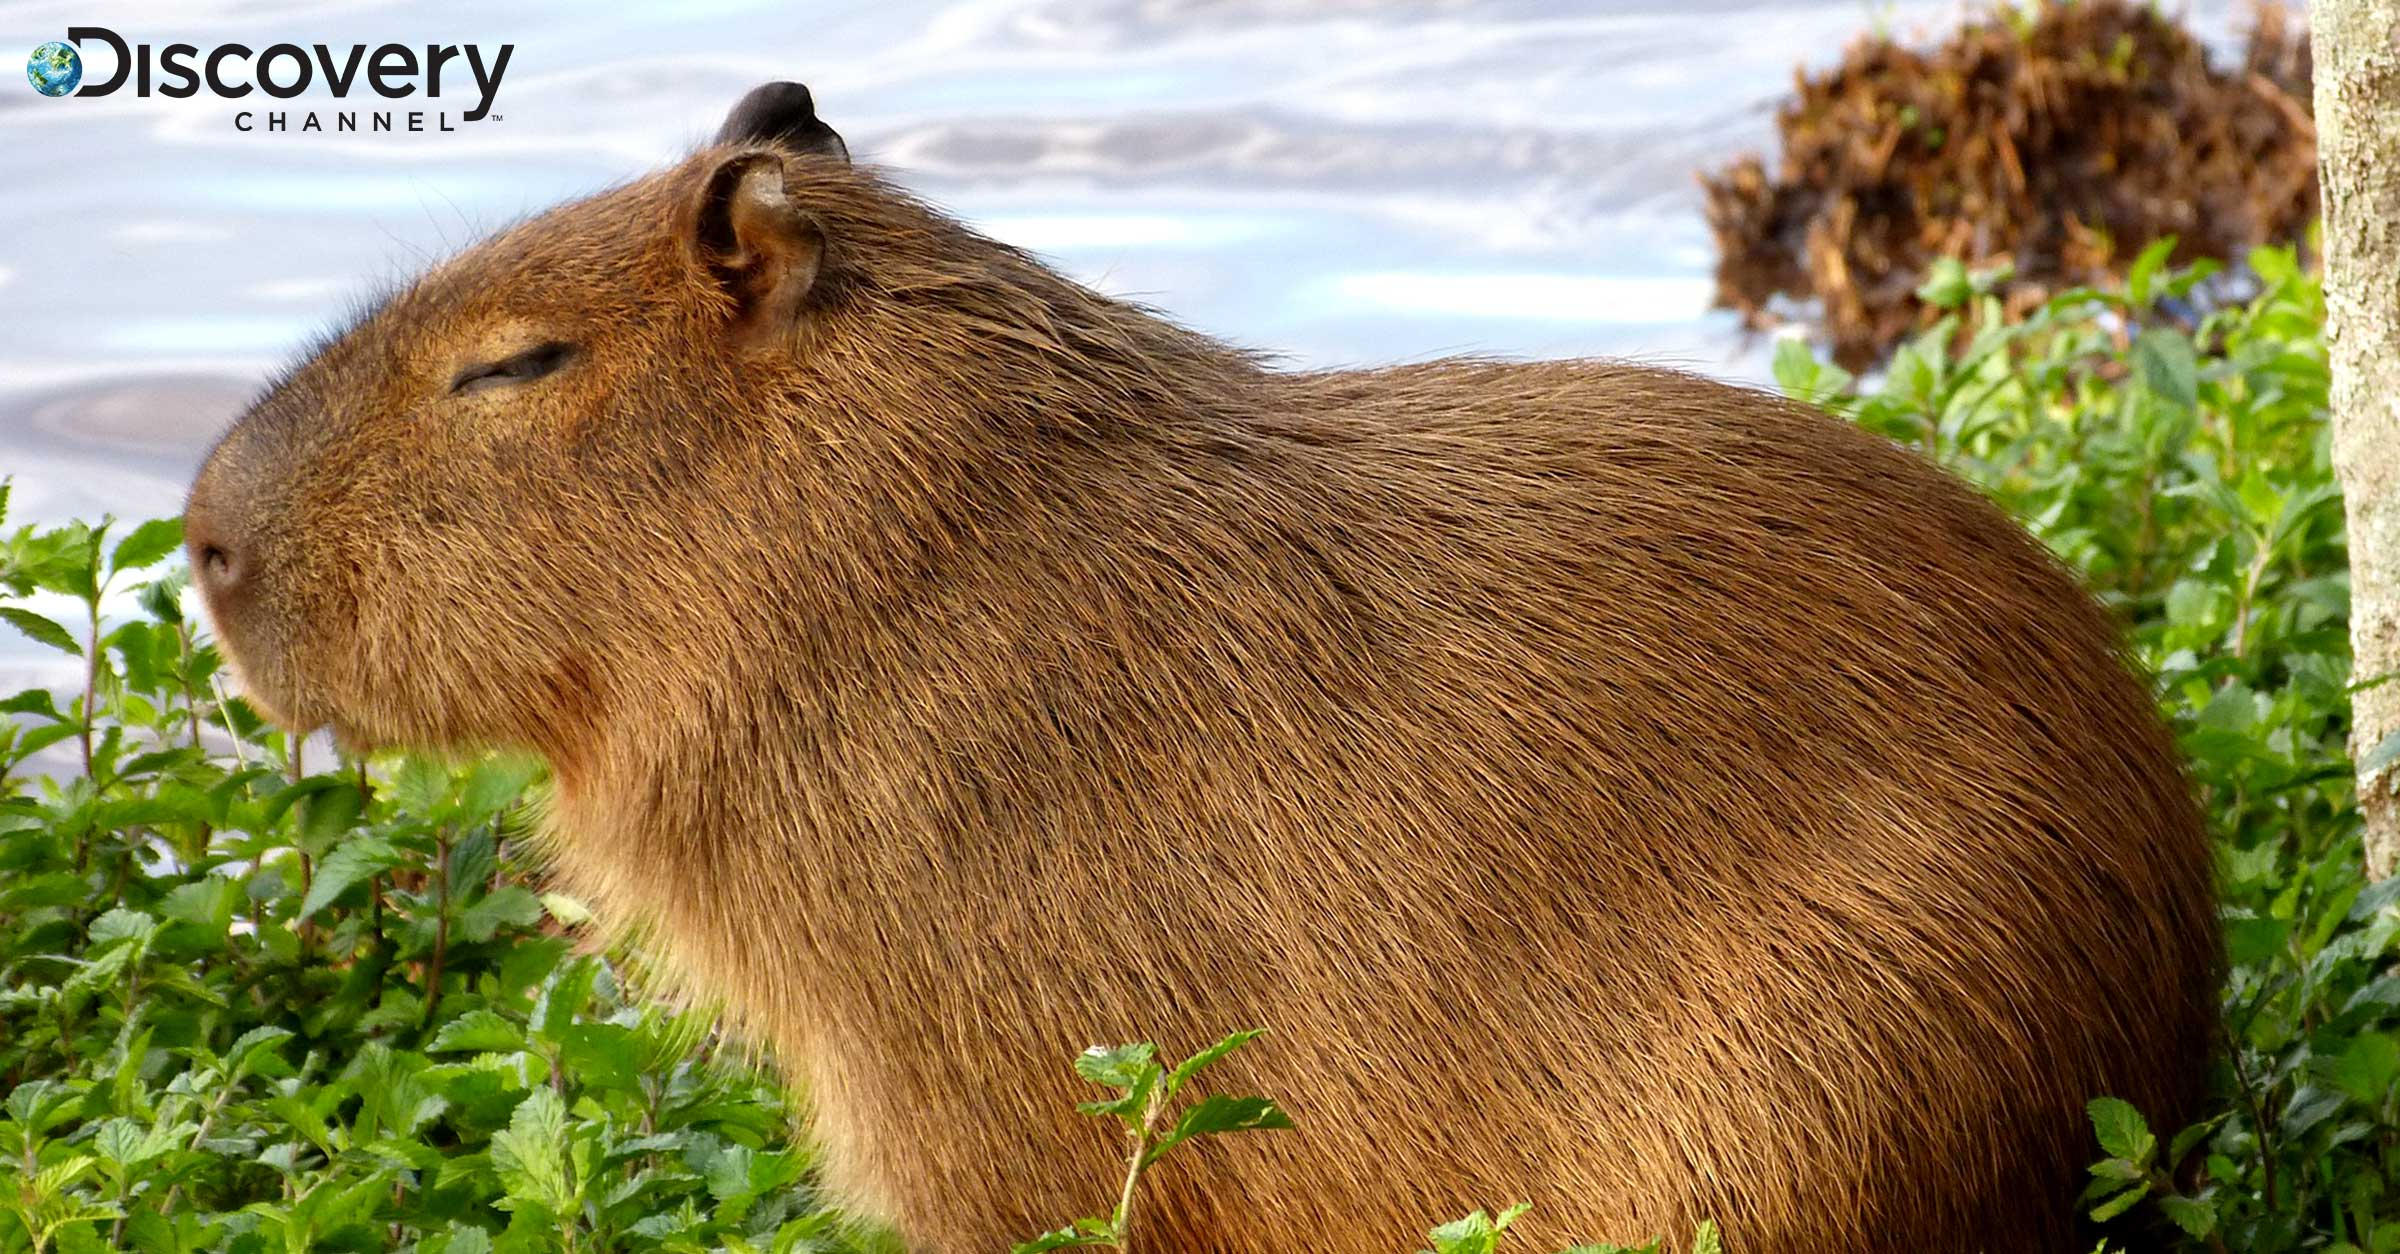 Discovery Attempts to Replicate Success of Shark Week with Capybara Week